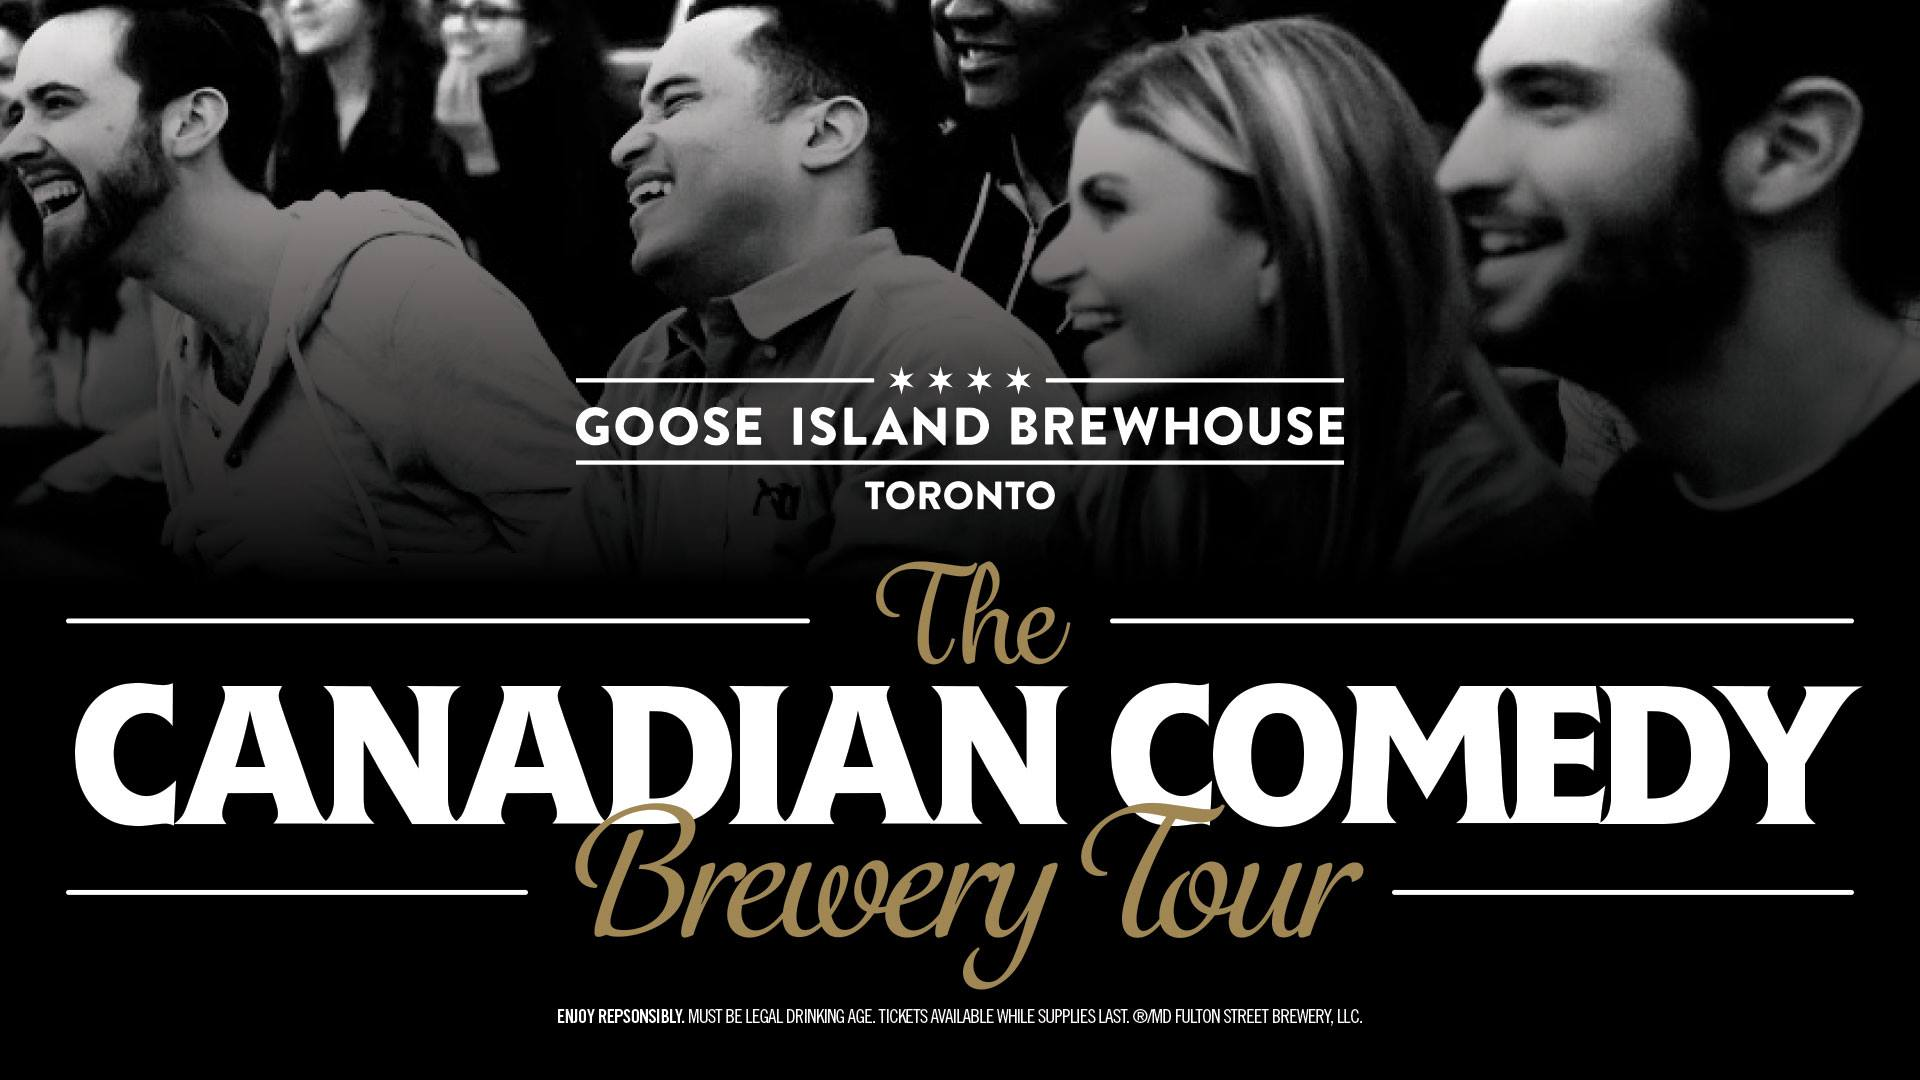 The Canadian Comedy Brewery Tour @ Goose Island Brewhouse Toronto